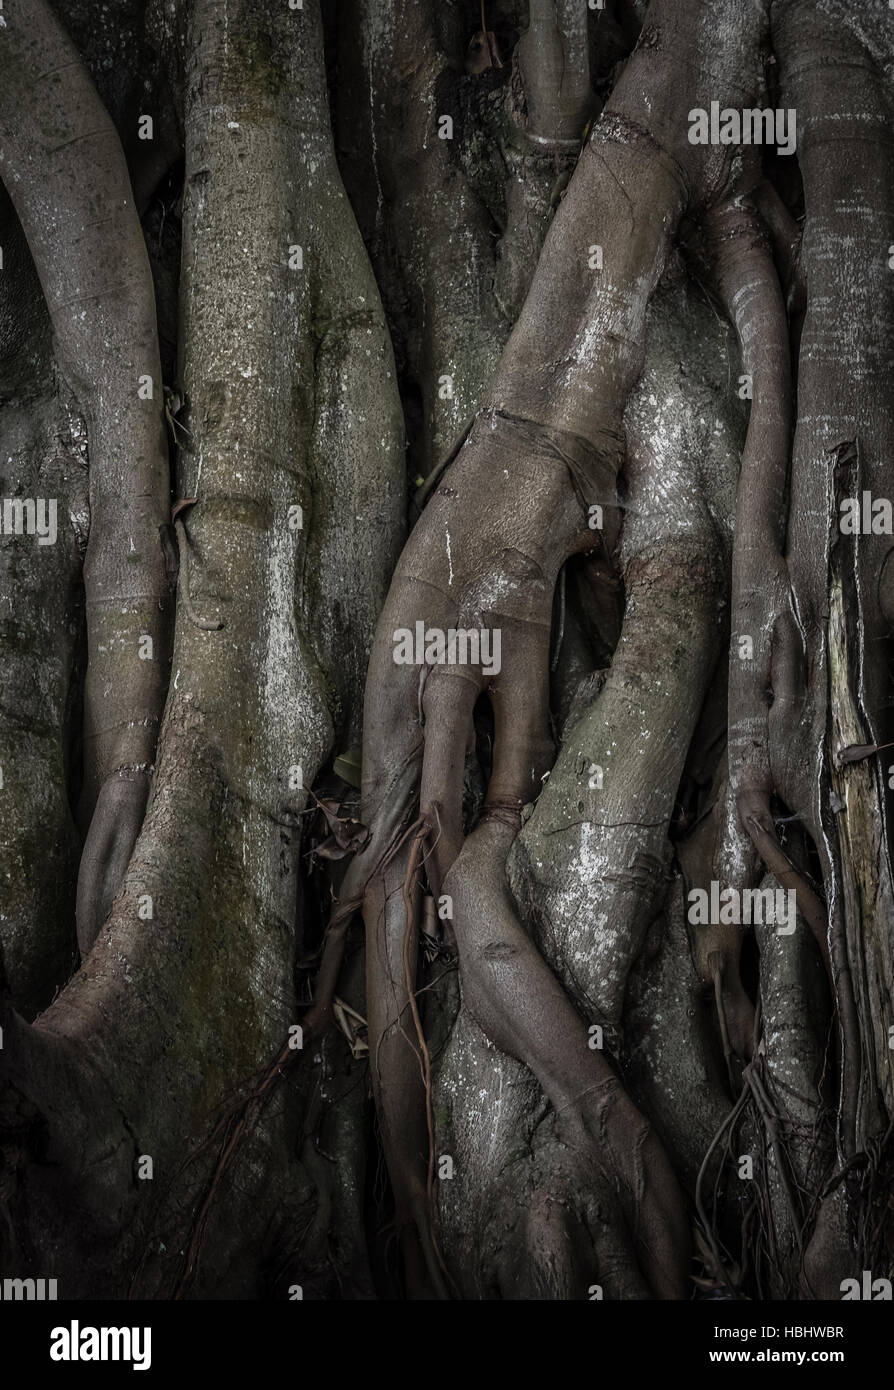 Enormous tree roots - Stock Image